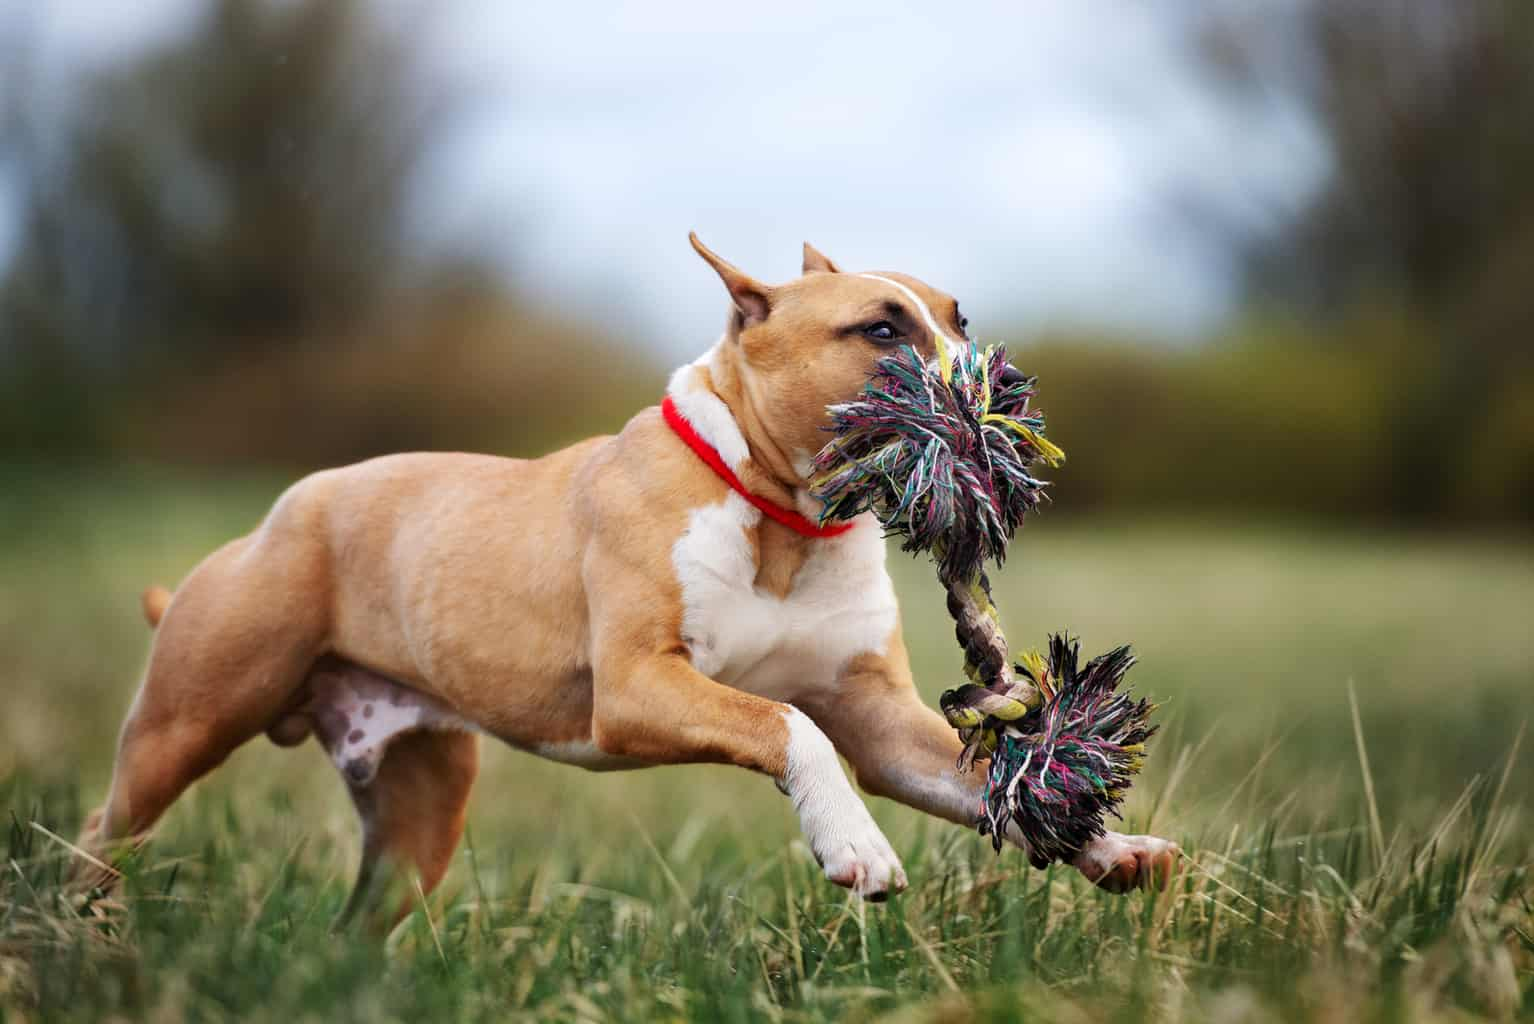 Stunning Pitbull Terrier with a rope toy